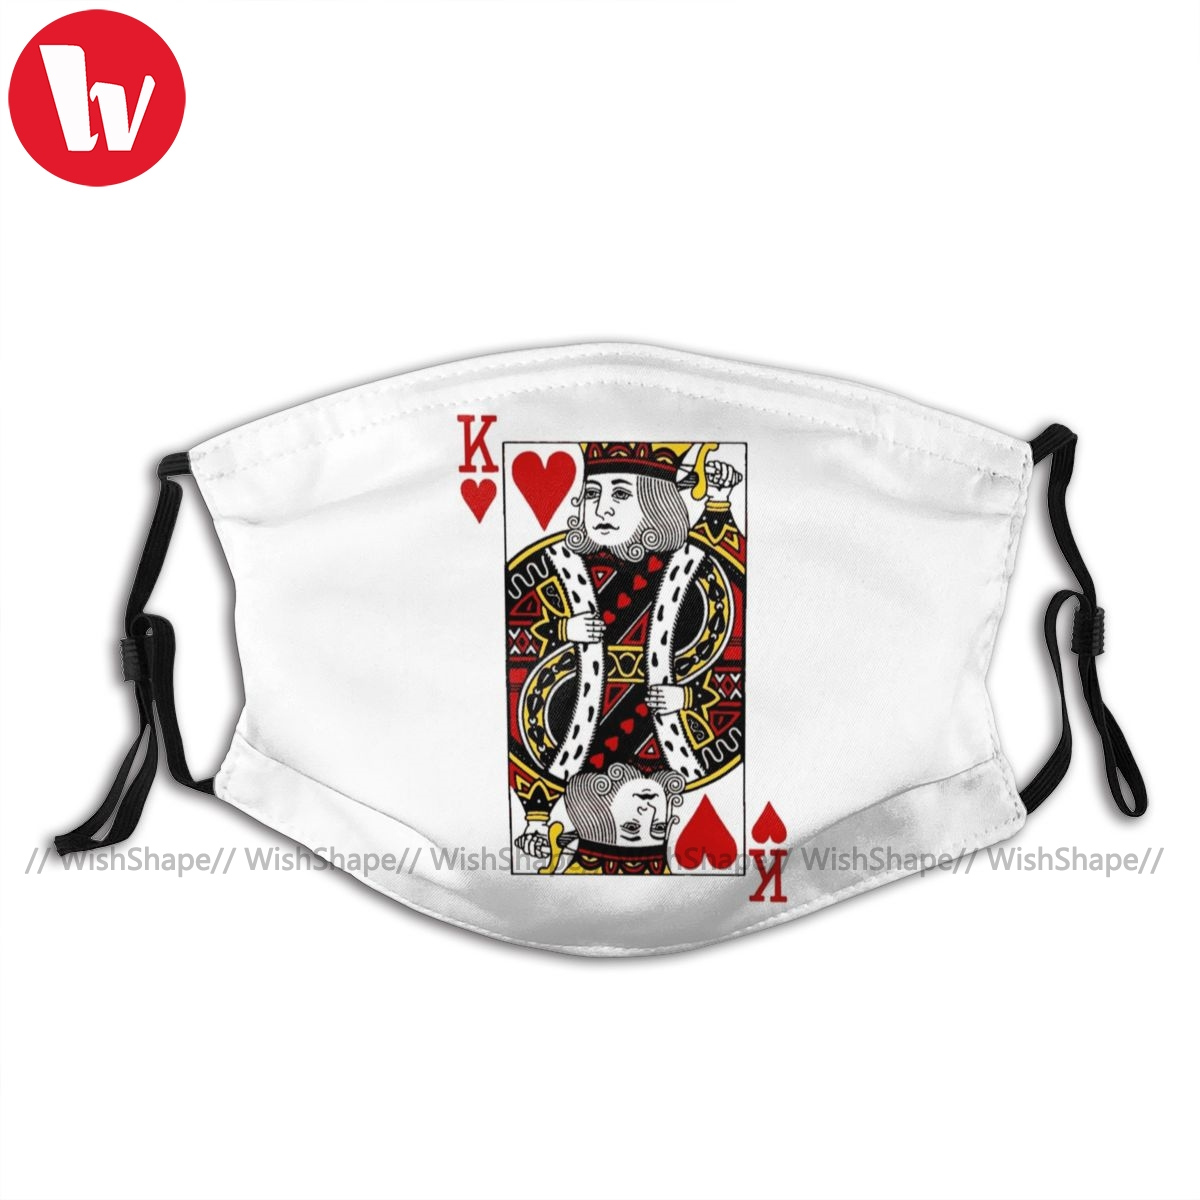 Poker Mouth Face Mask KING OF HEARTS Facial Mask with 2 Filters Pretty Kawai Adult Mask